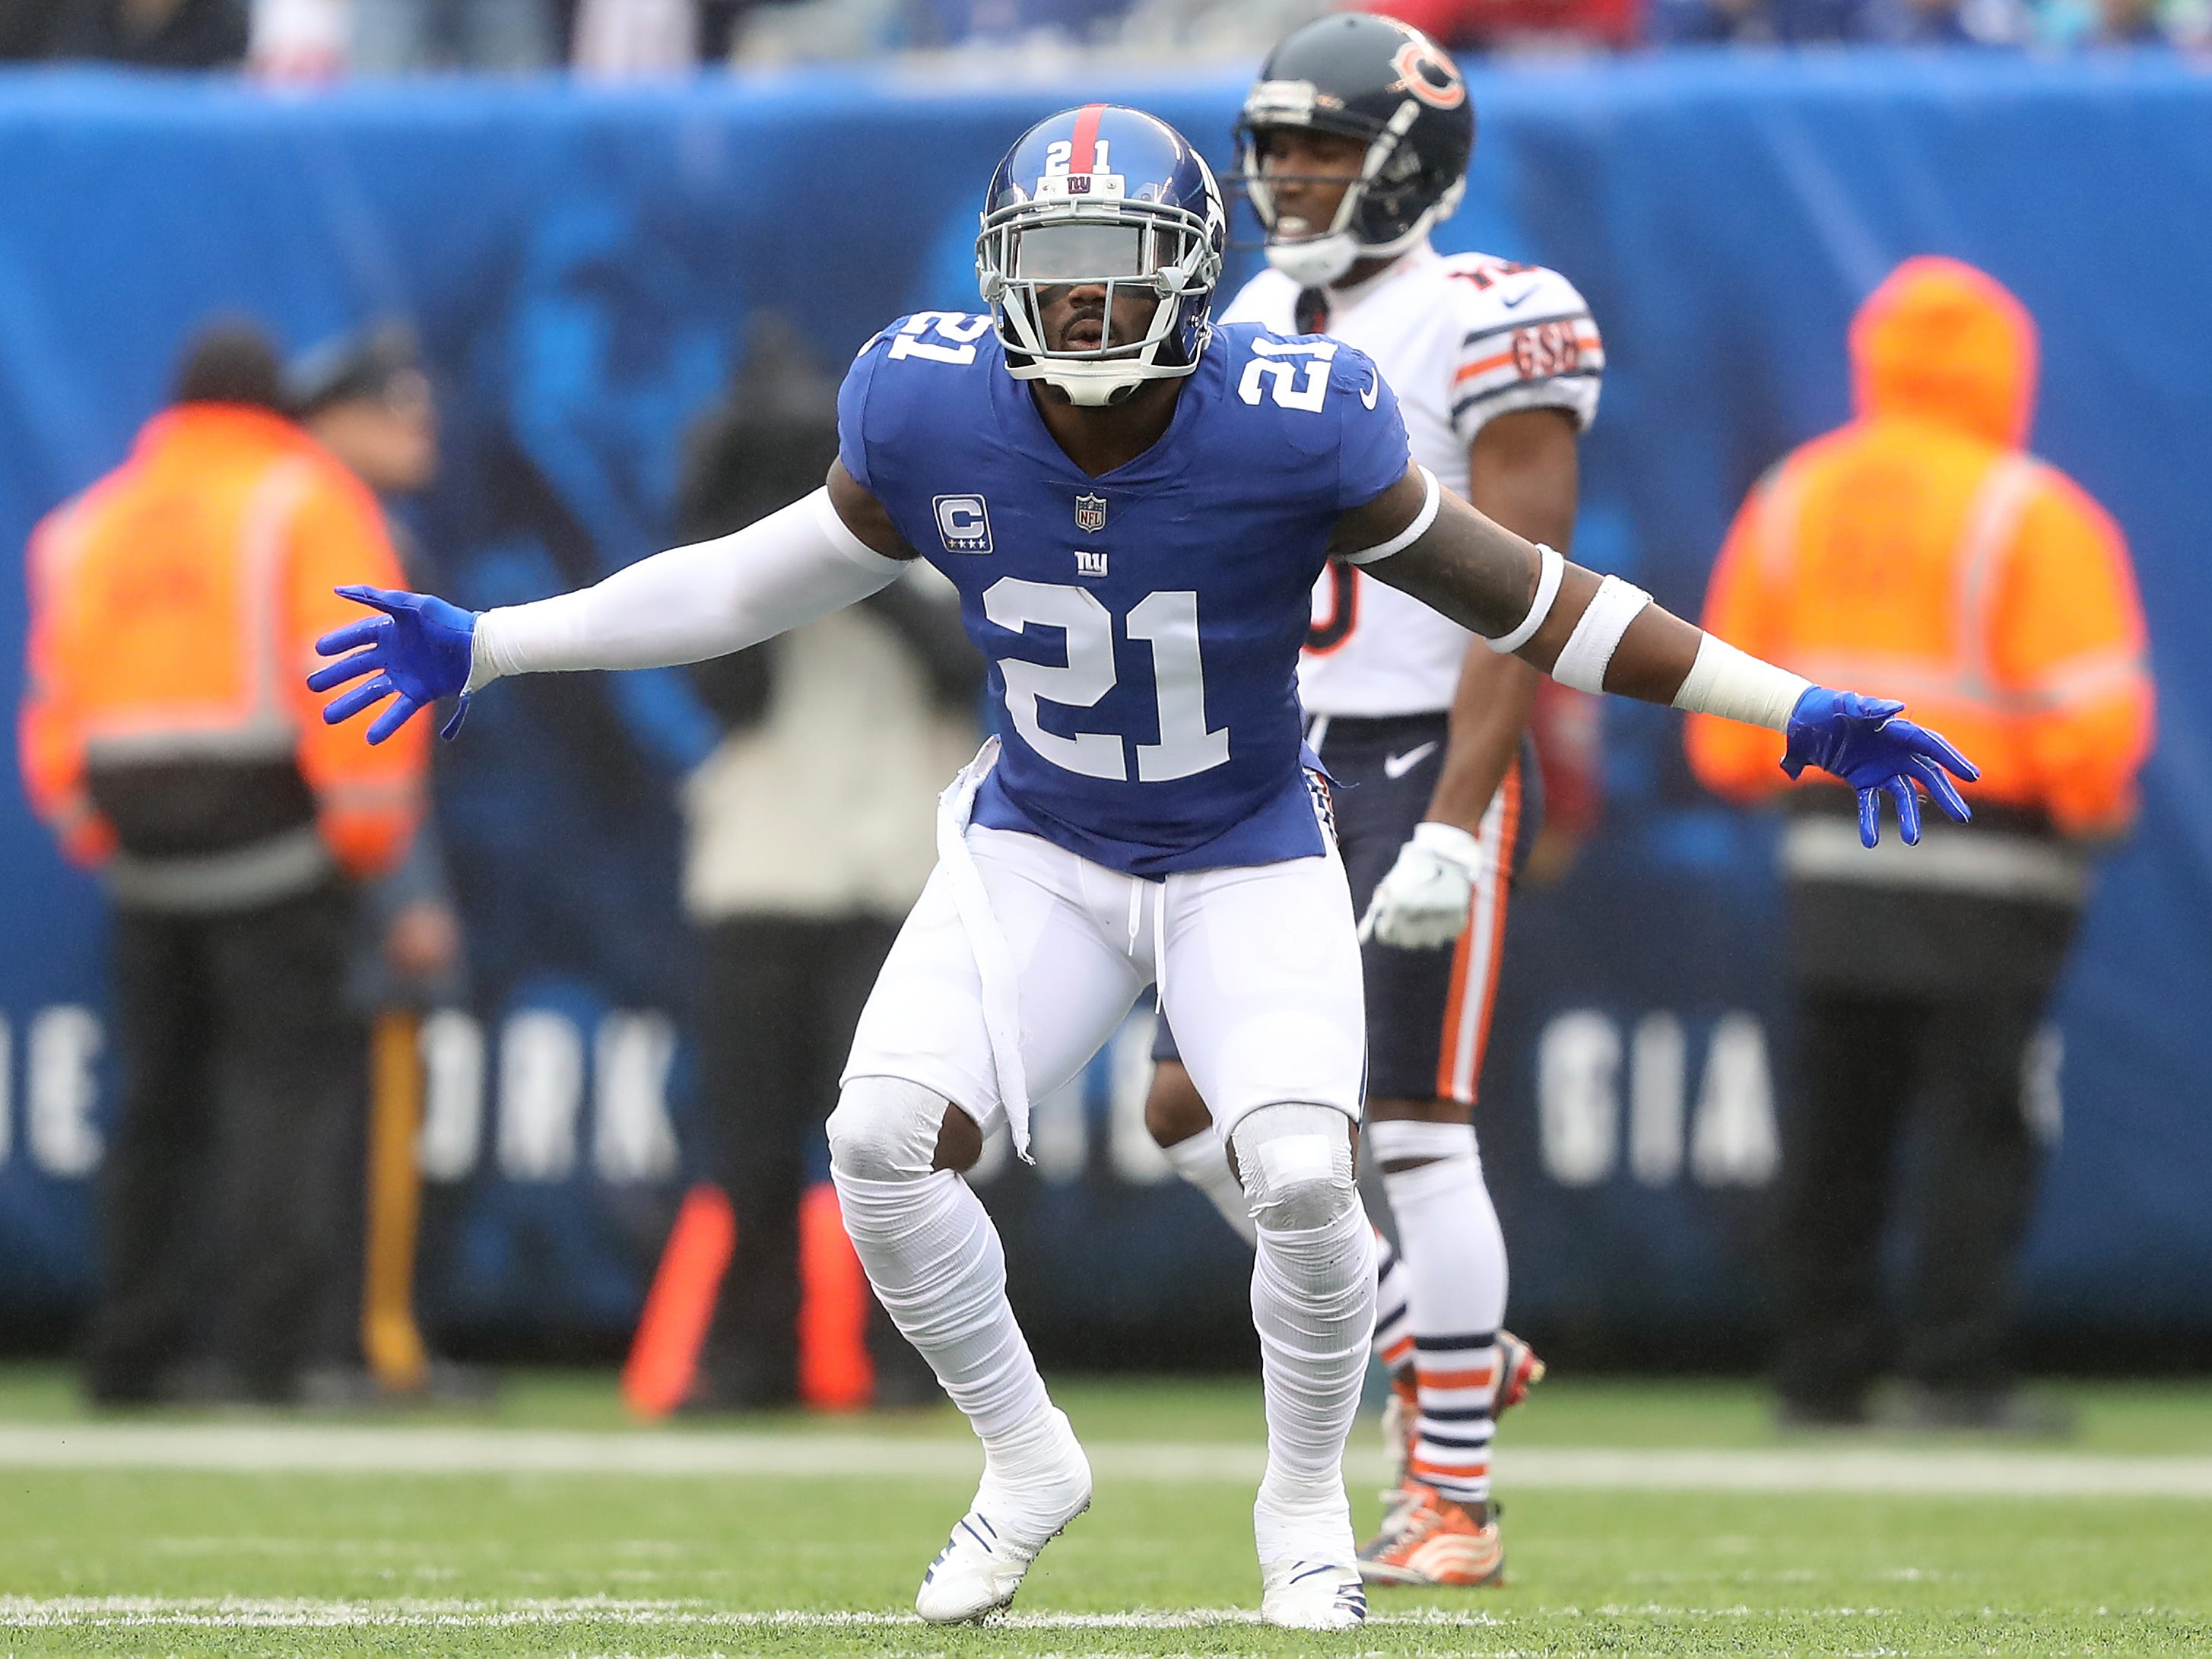 SS - Landon Collins, New York Giants